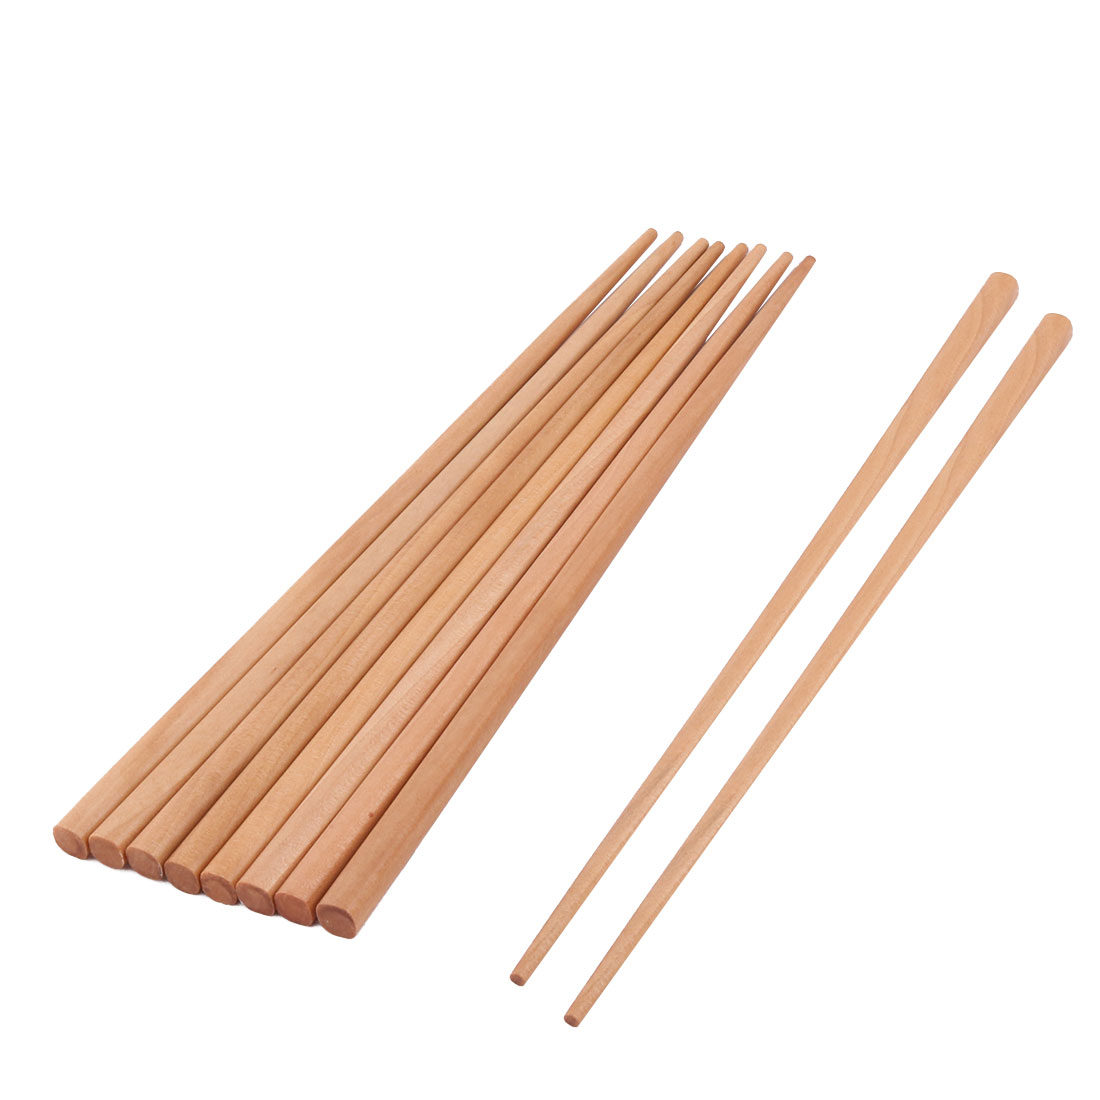 Restaurant Foods Dish Rice Noodles Sushi Serving Chopsticks Wood Color 5 Pairs